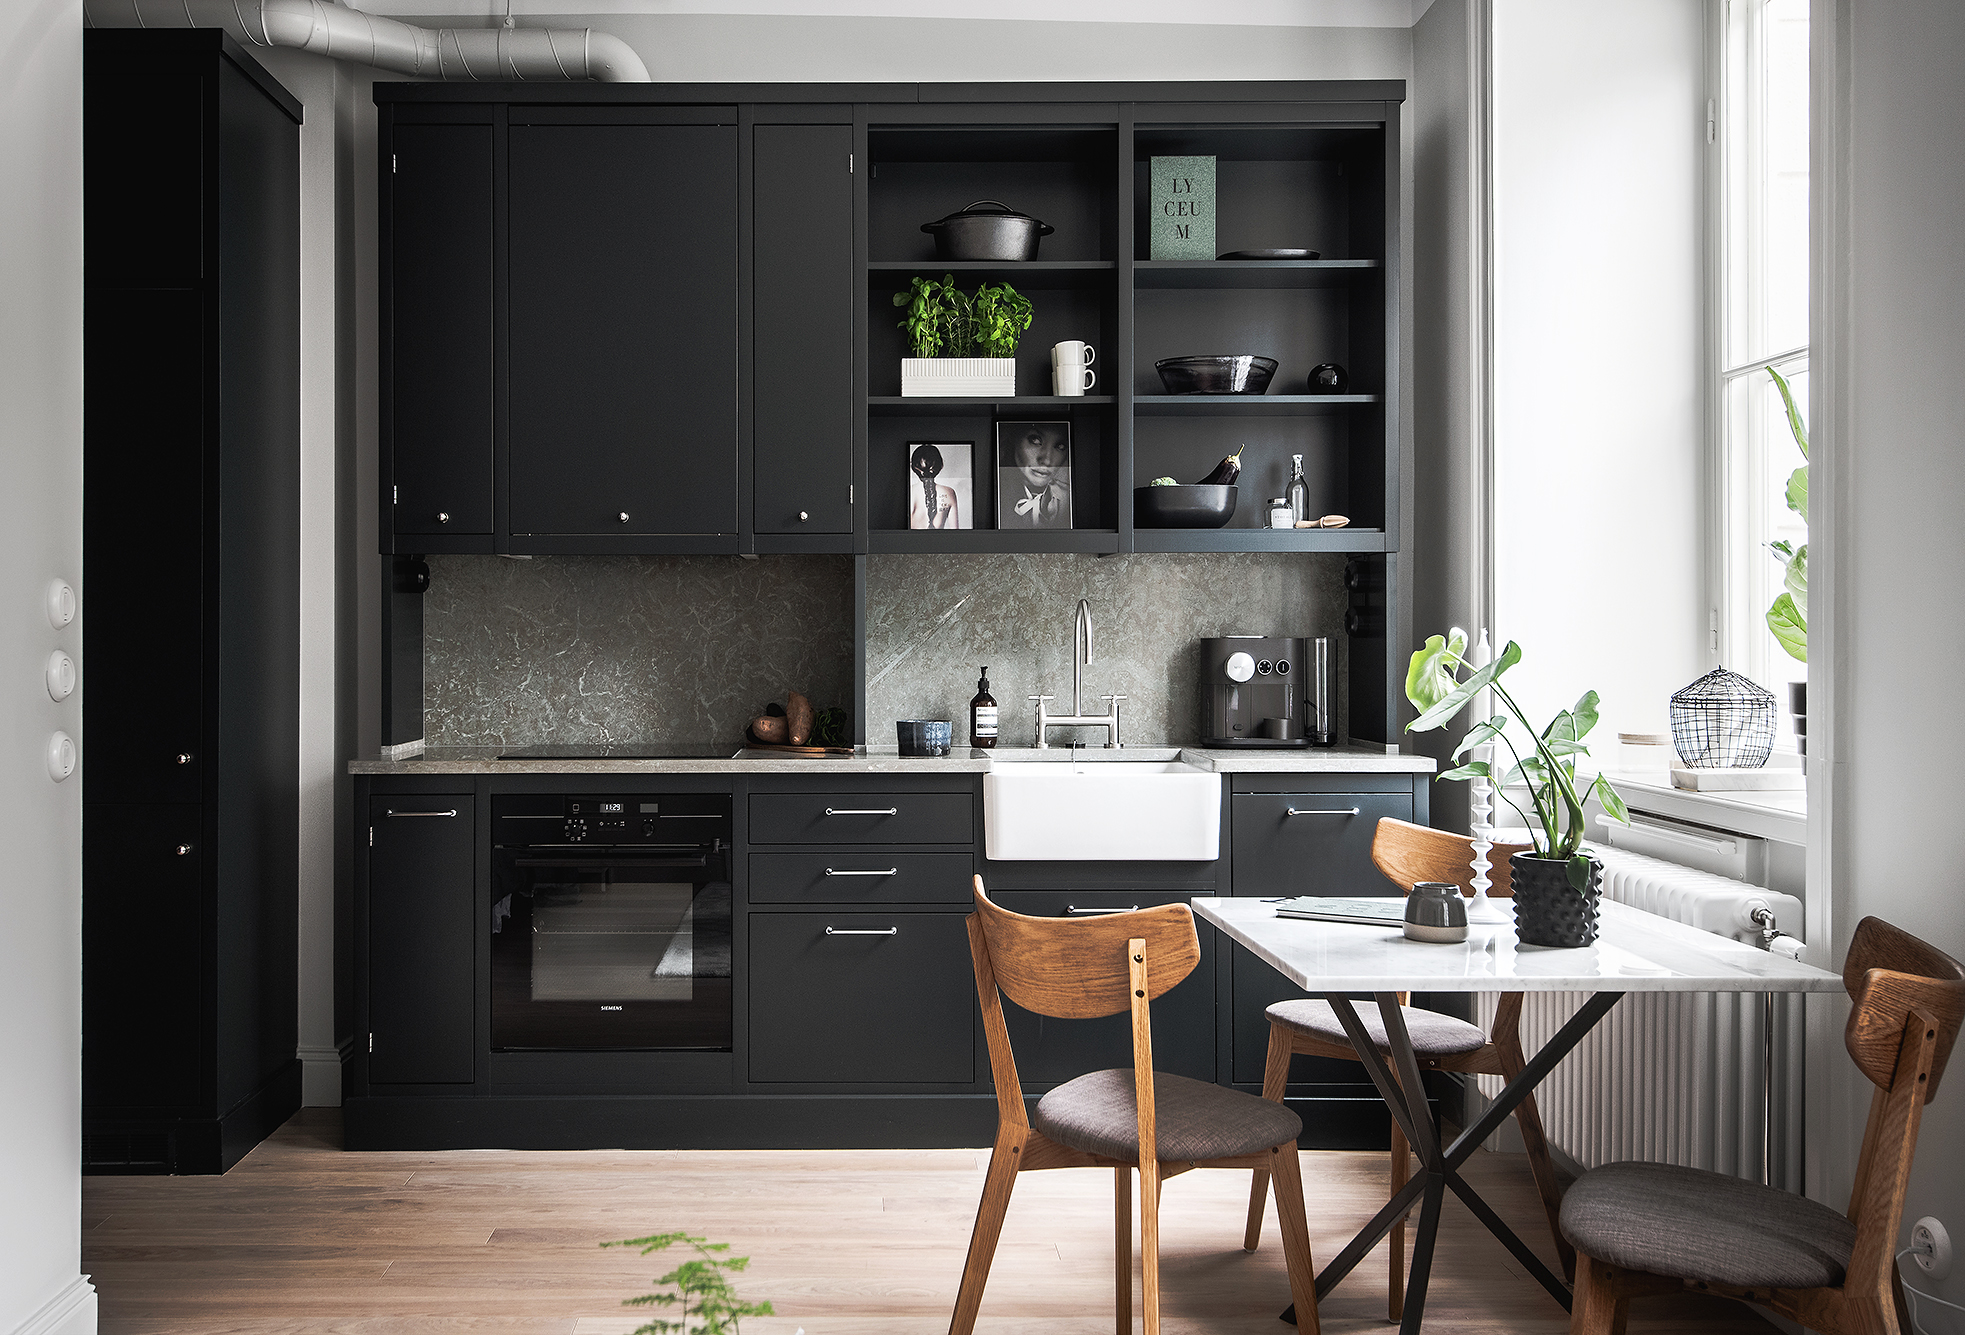 Great Kitchen Small Living Space With A Great Kitchen Coco Lapine Designcoco